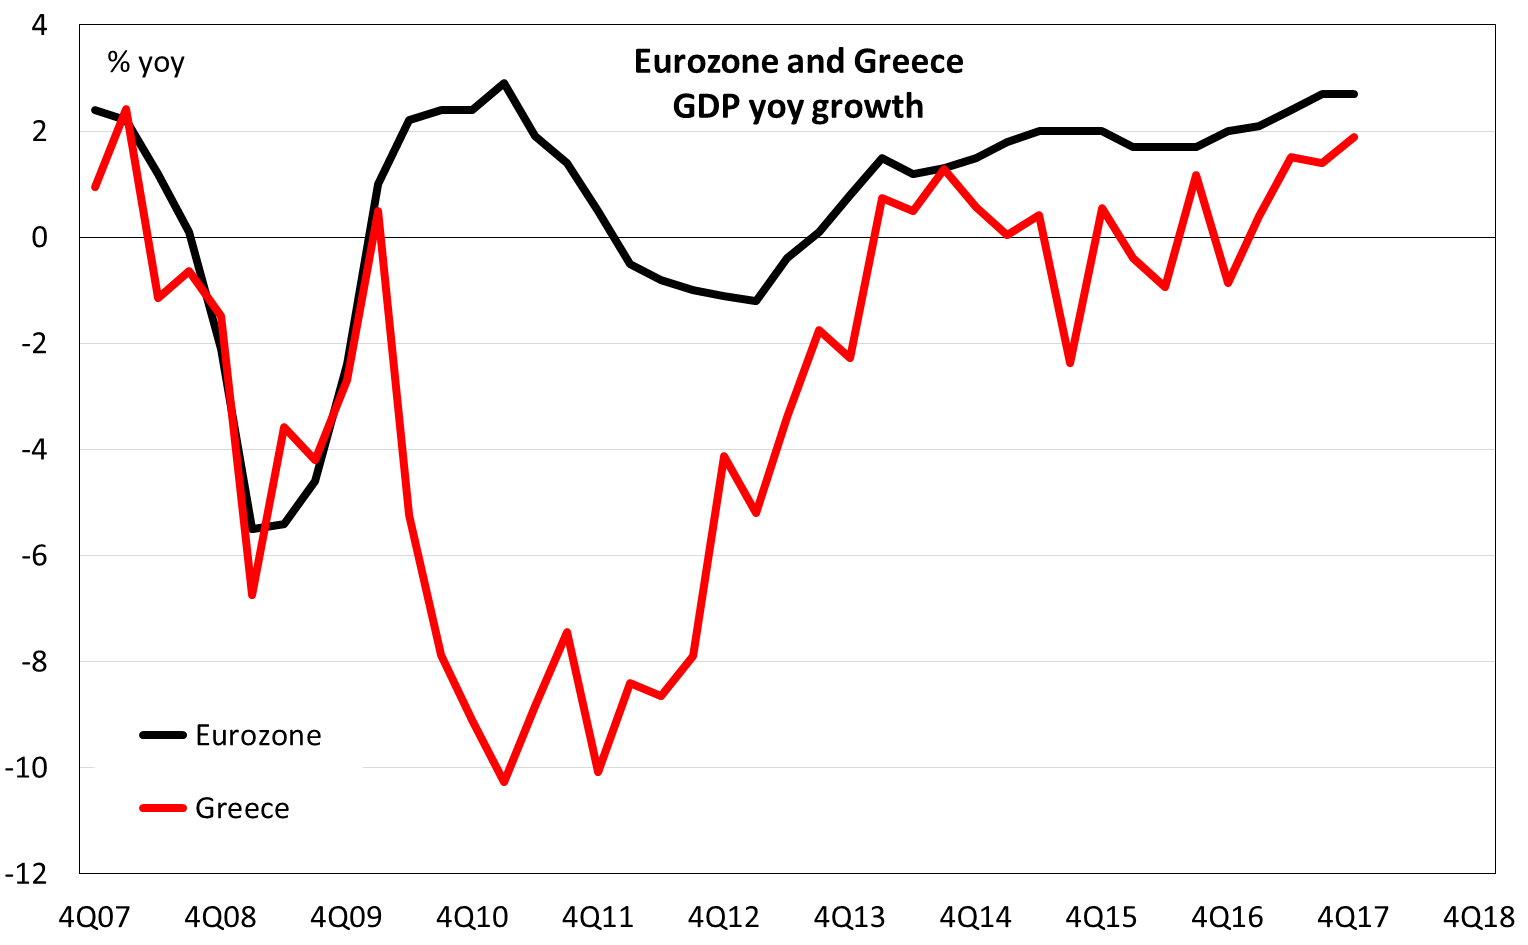 Greece's clean exit: Politics vs economics | Greece@LSE